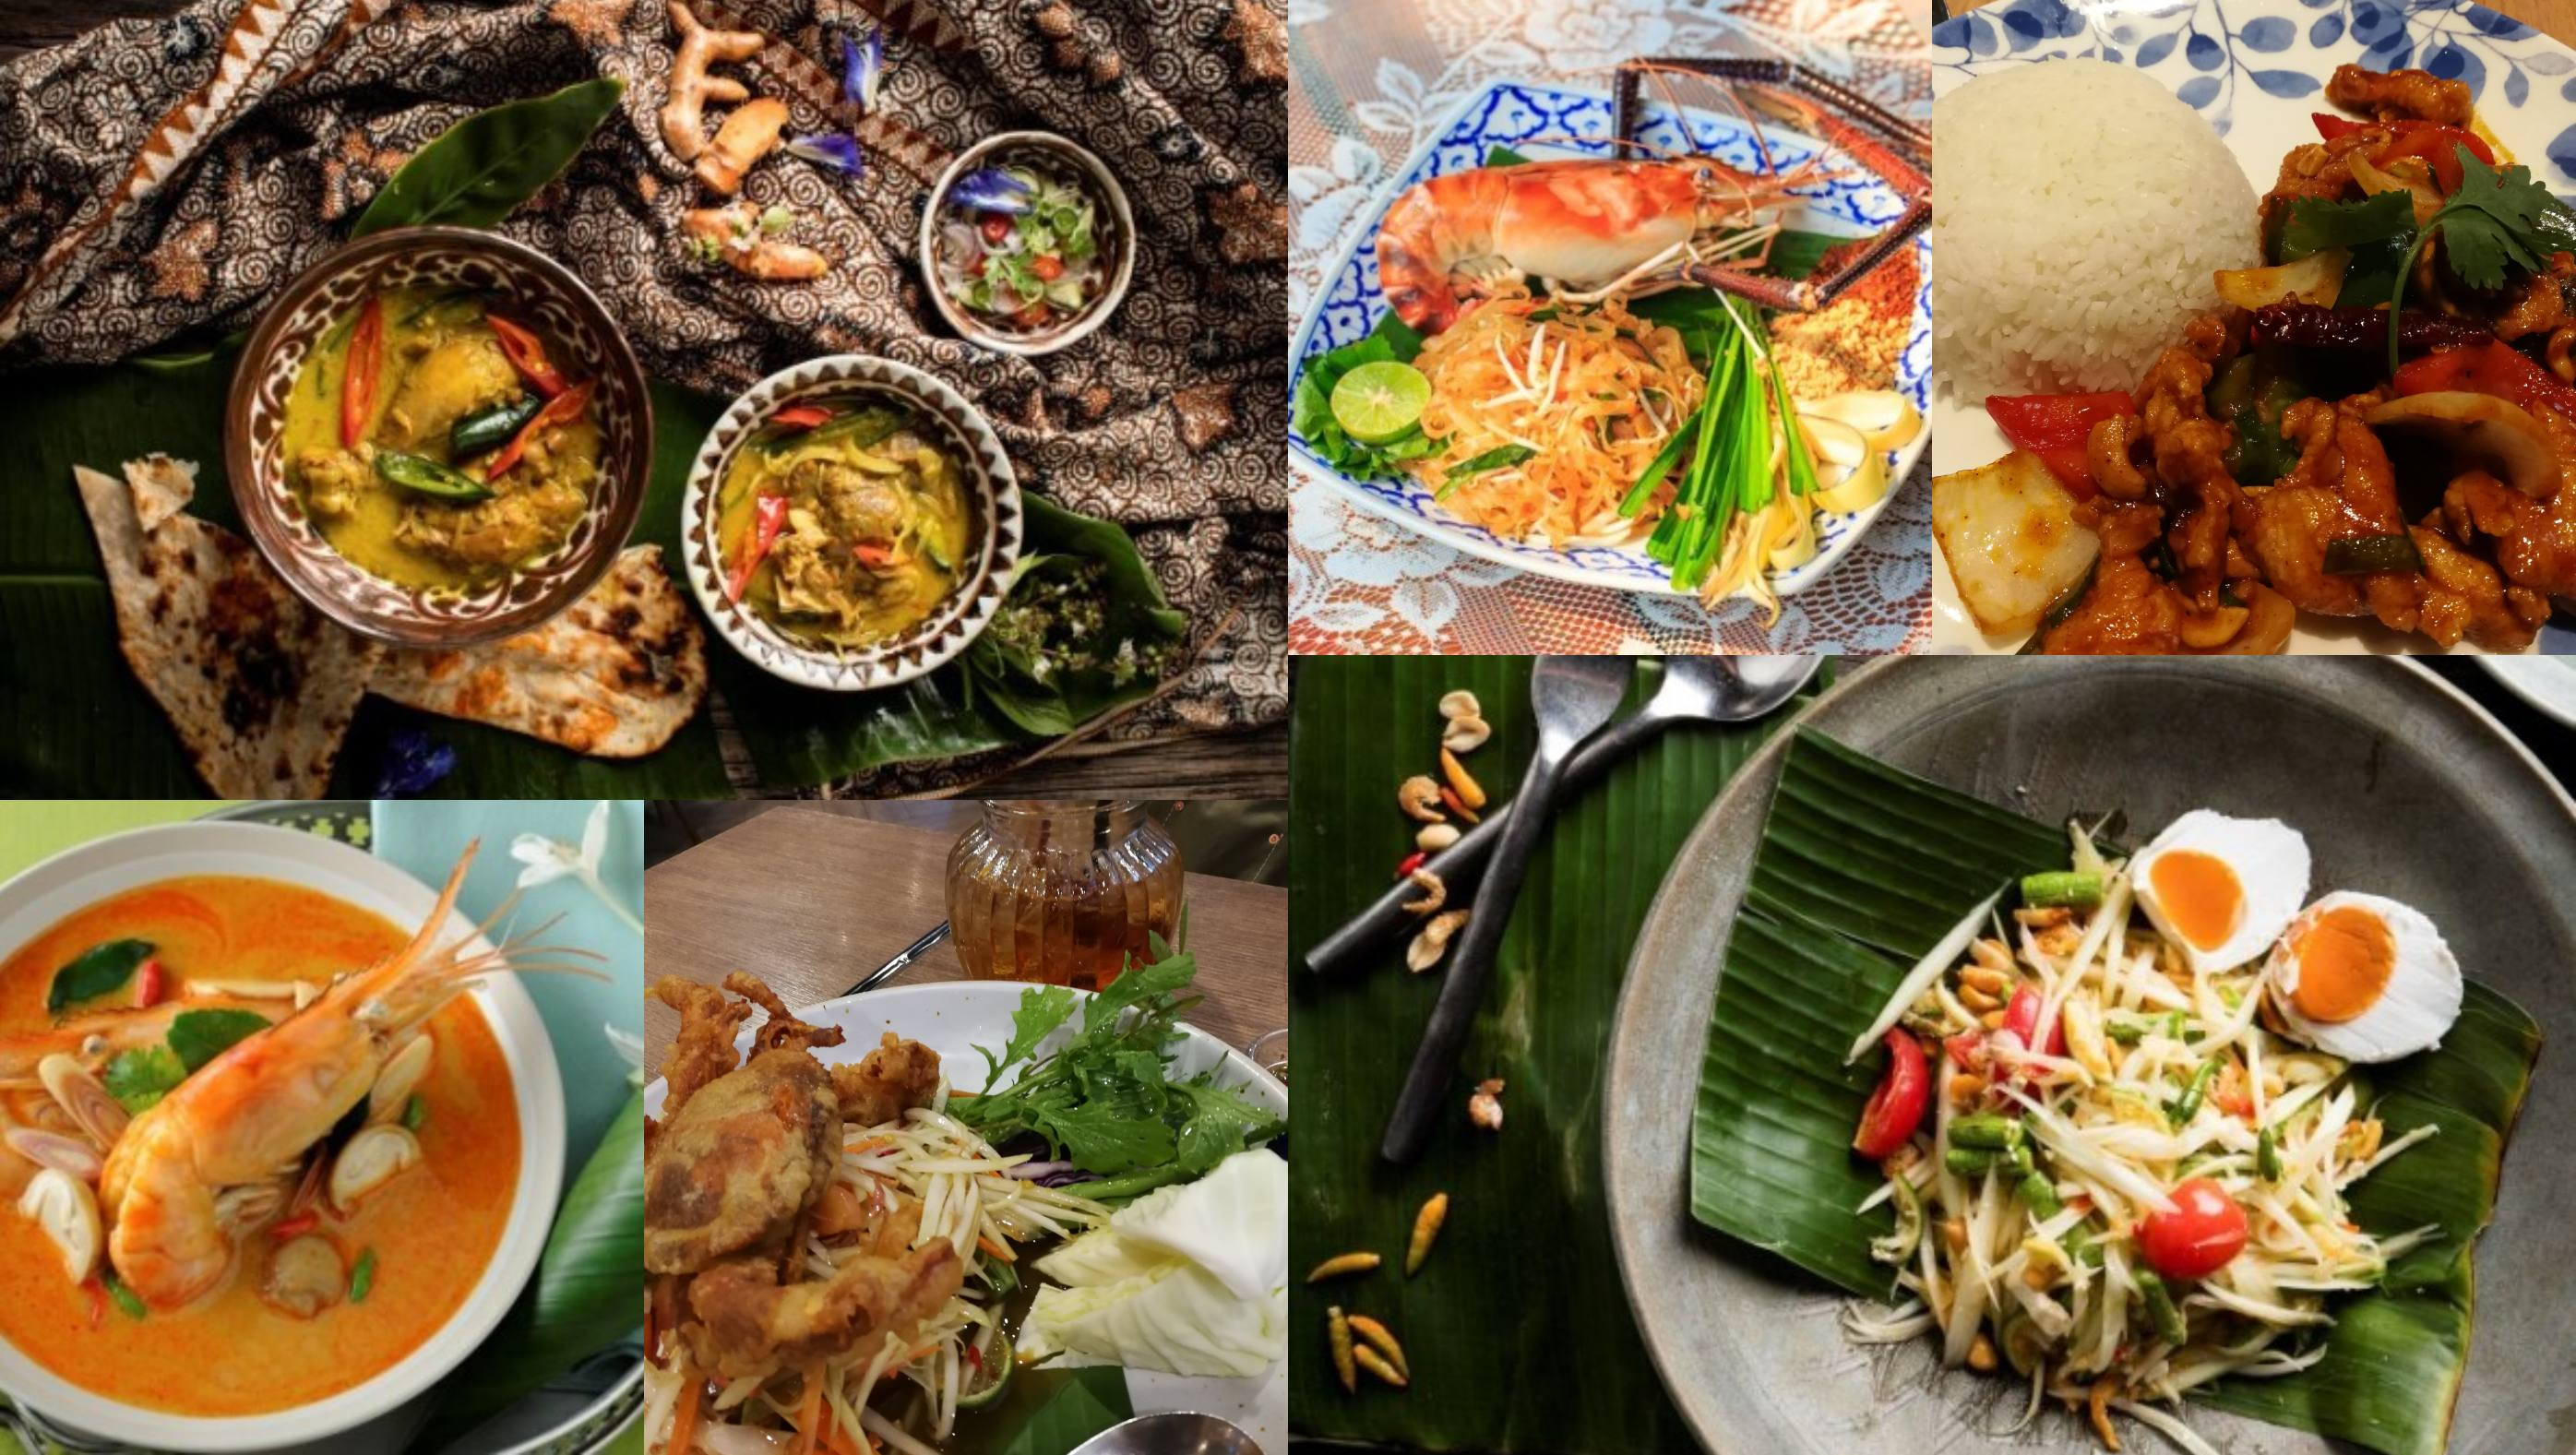 Bangkok among Top Destinations For Dining (3rd) & Shopping (6th)